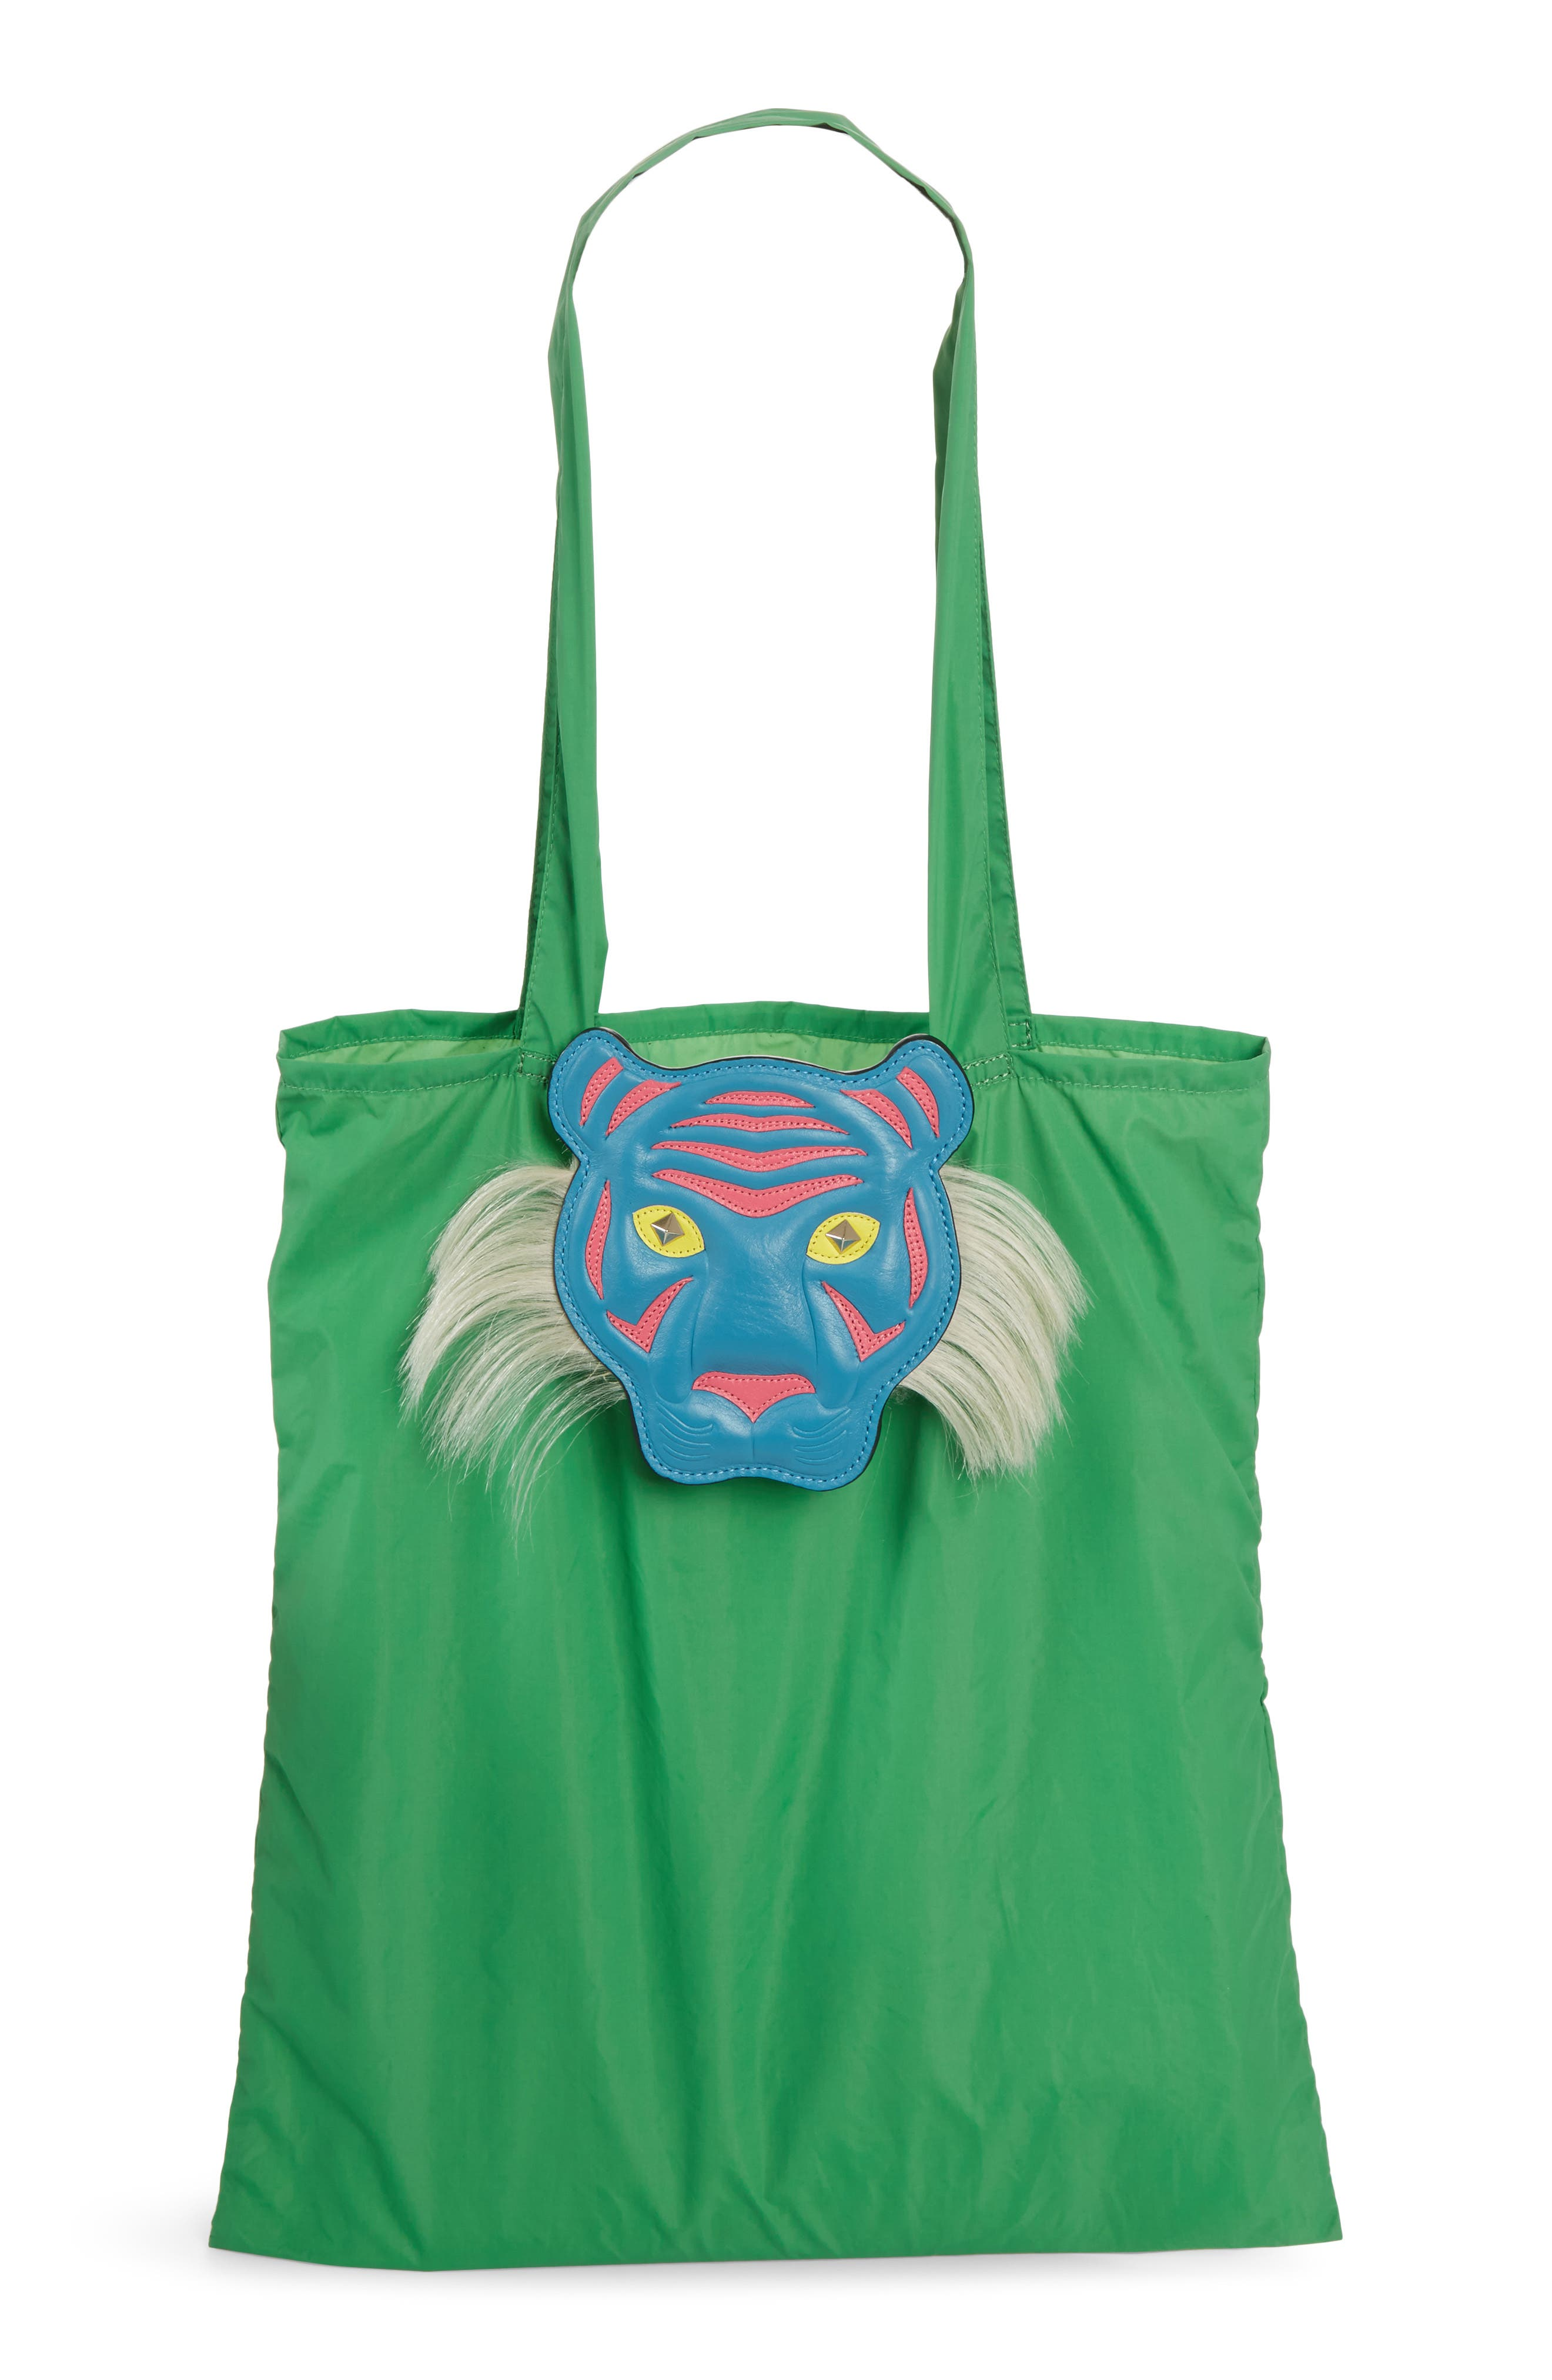 Nylon Tote with Genuine Goat Fur & Leather Bag Charm,                             Main thumbnail 1, color,                             Green Multi